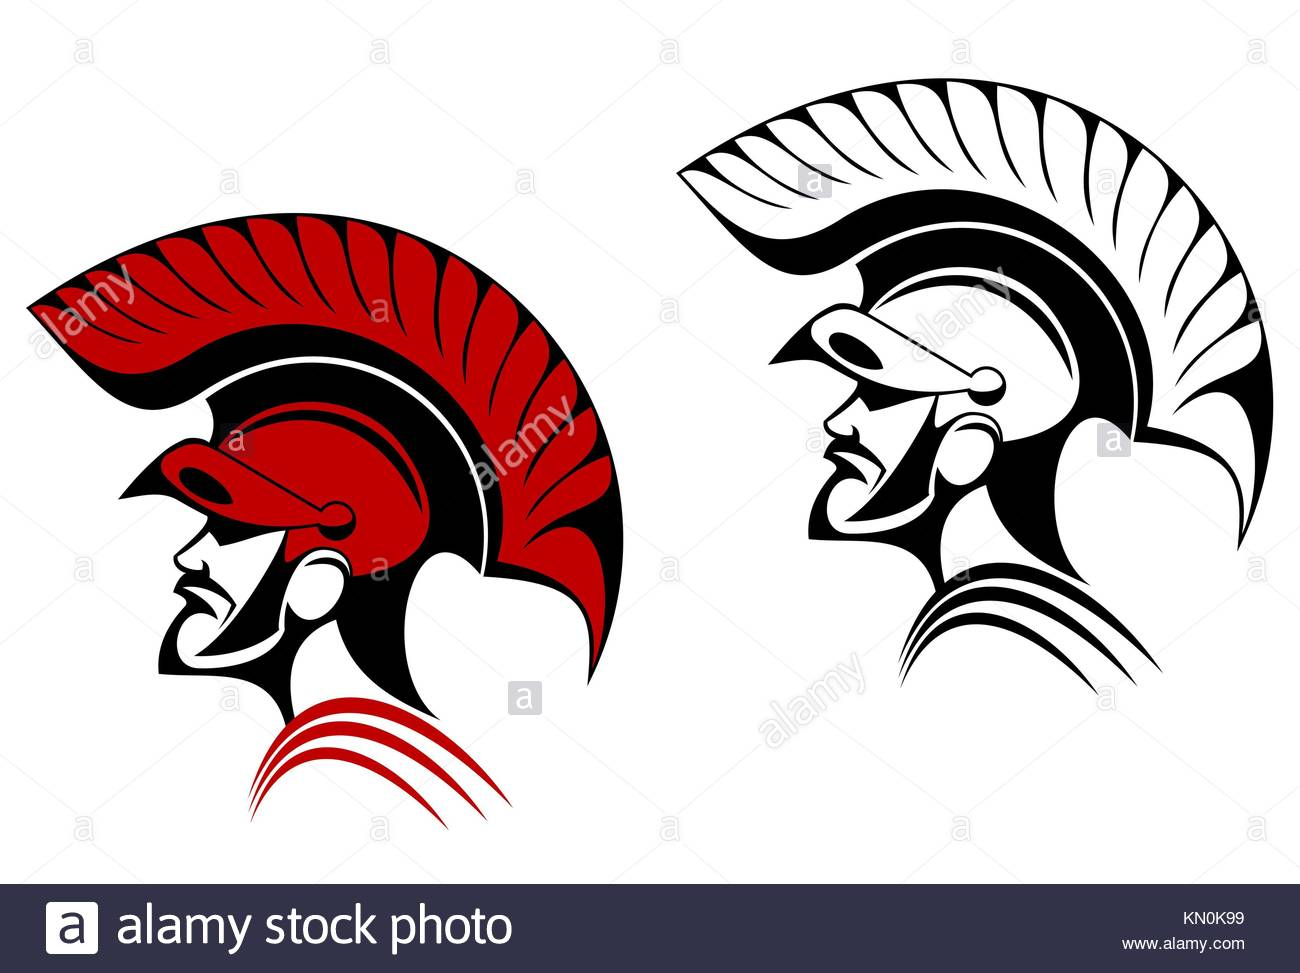 Ancient warrior stock photos ancient warrior stock images alamy ancient warrior symbol as a concept of security or power stock image biocorpaavc Choice Image